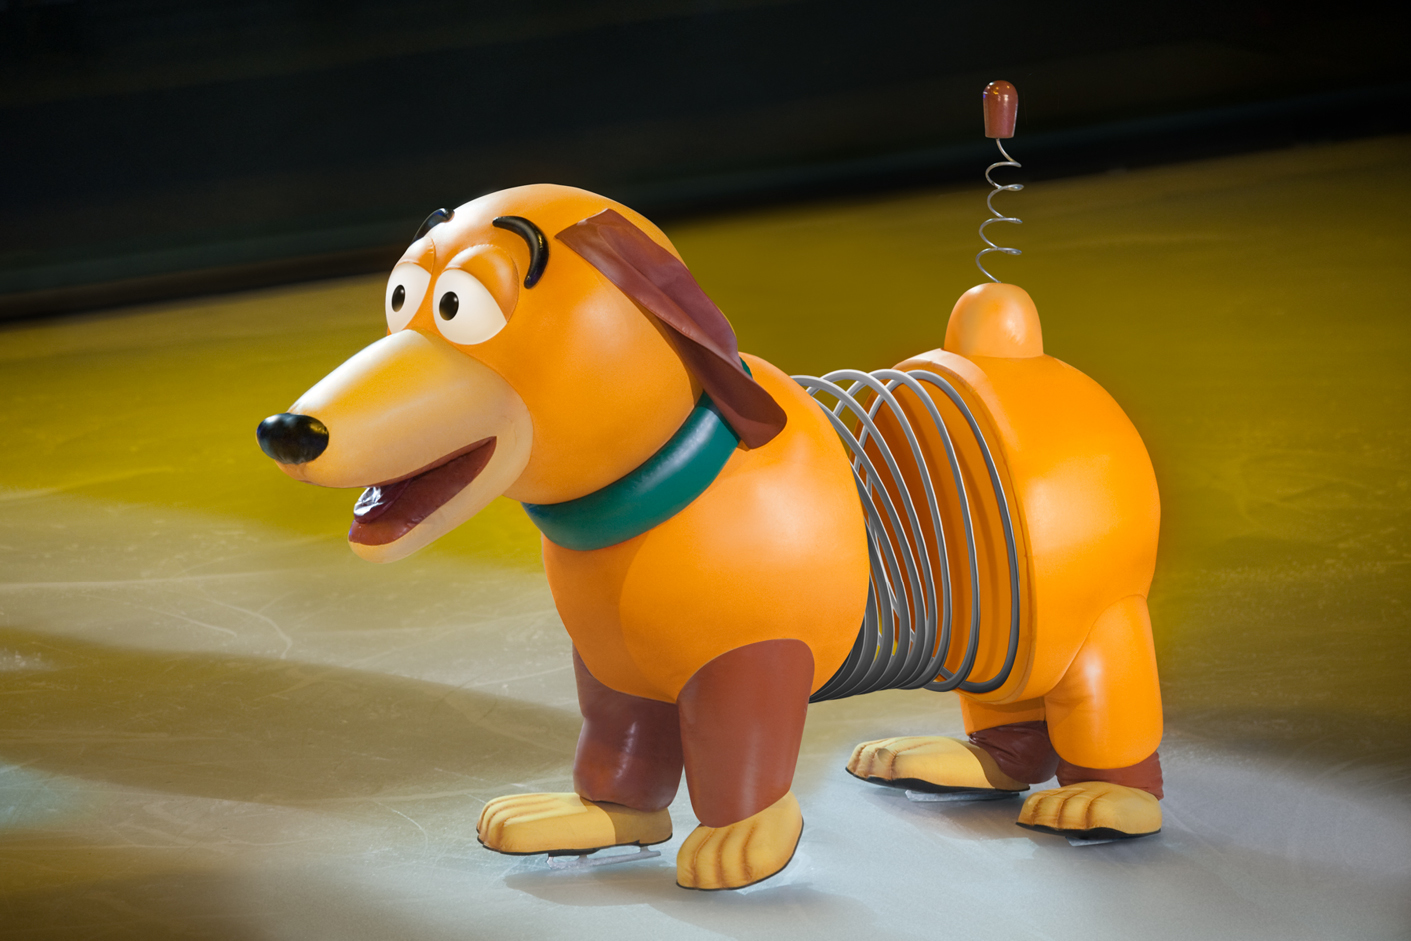 Slinky dog from Disney's Toy Story skating on ice